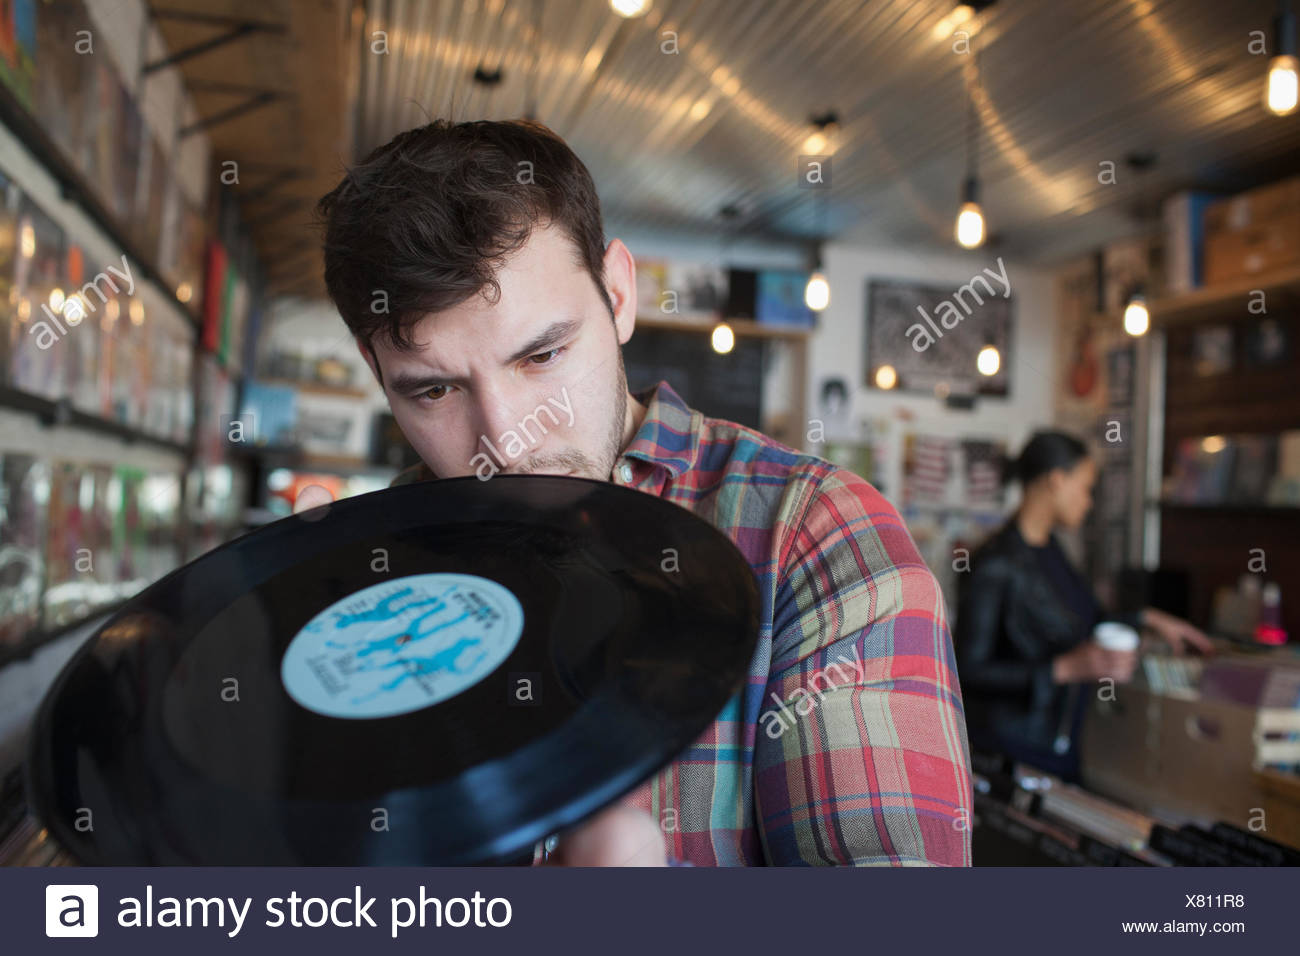 Young man and woman in a record store. - Stock Image